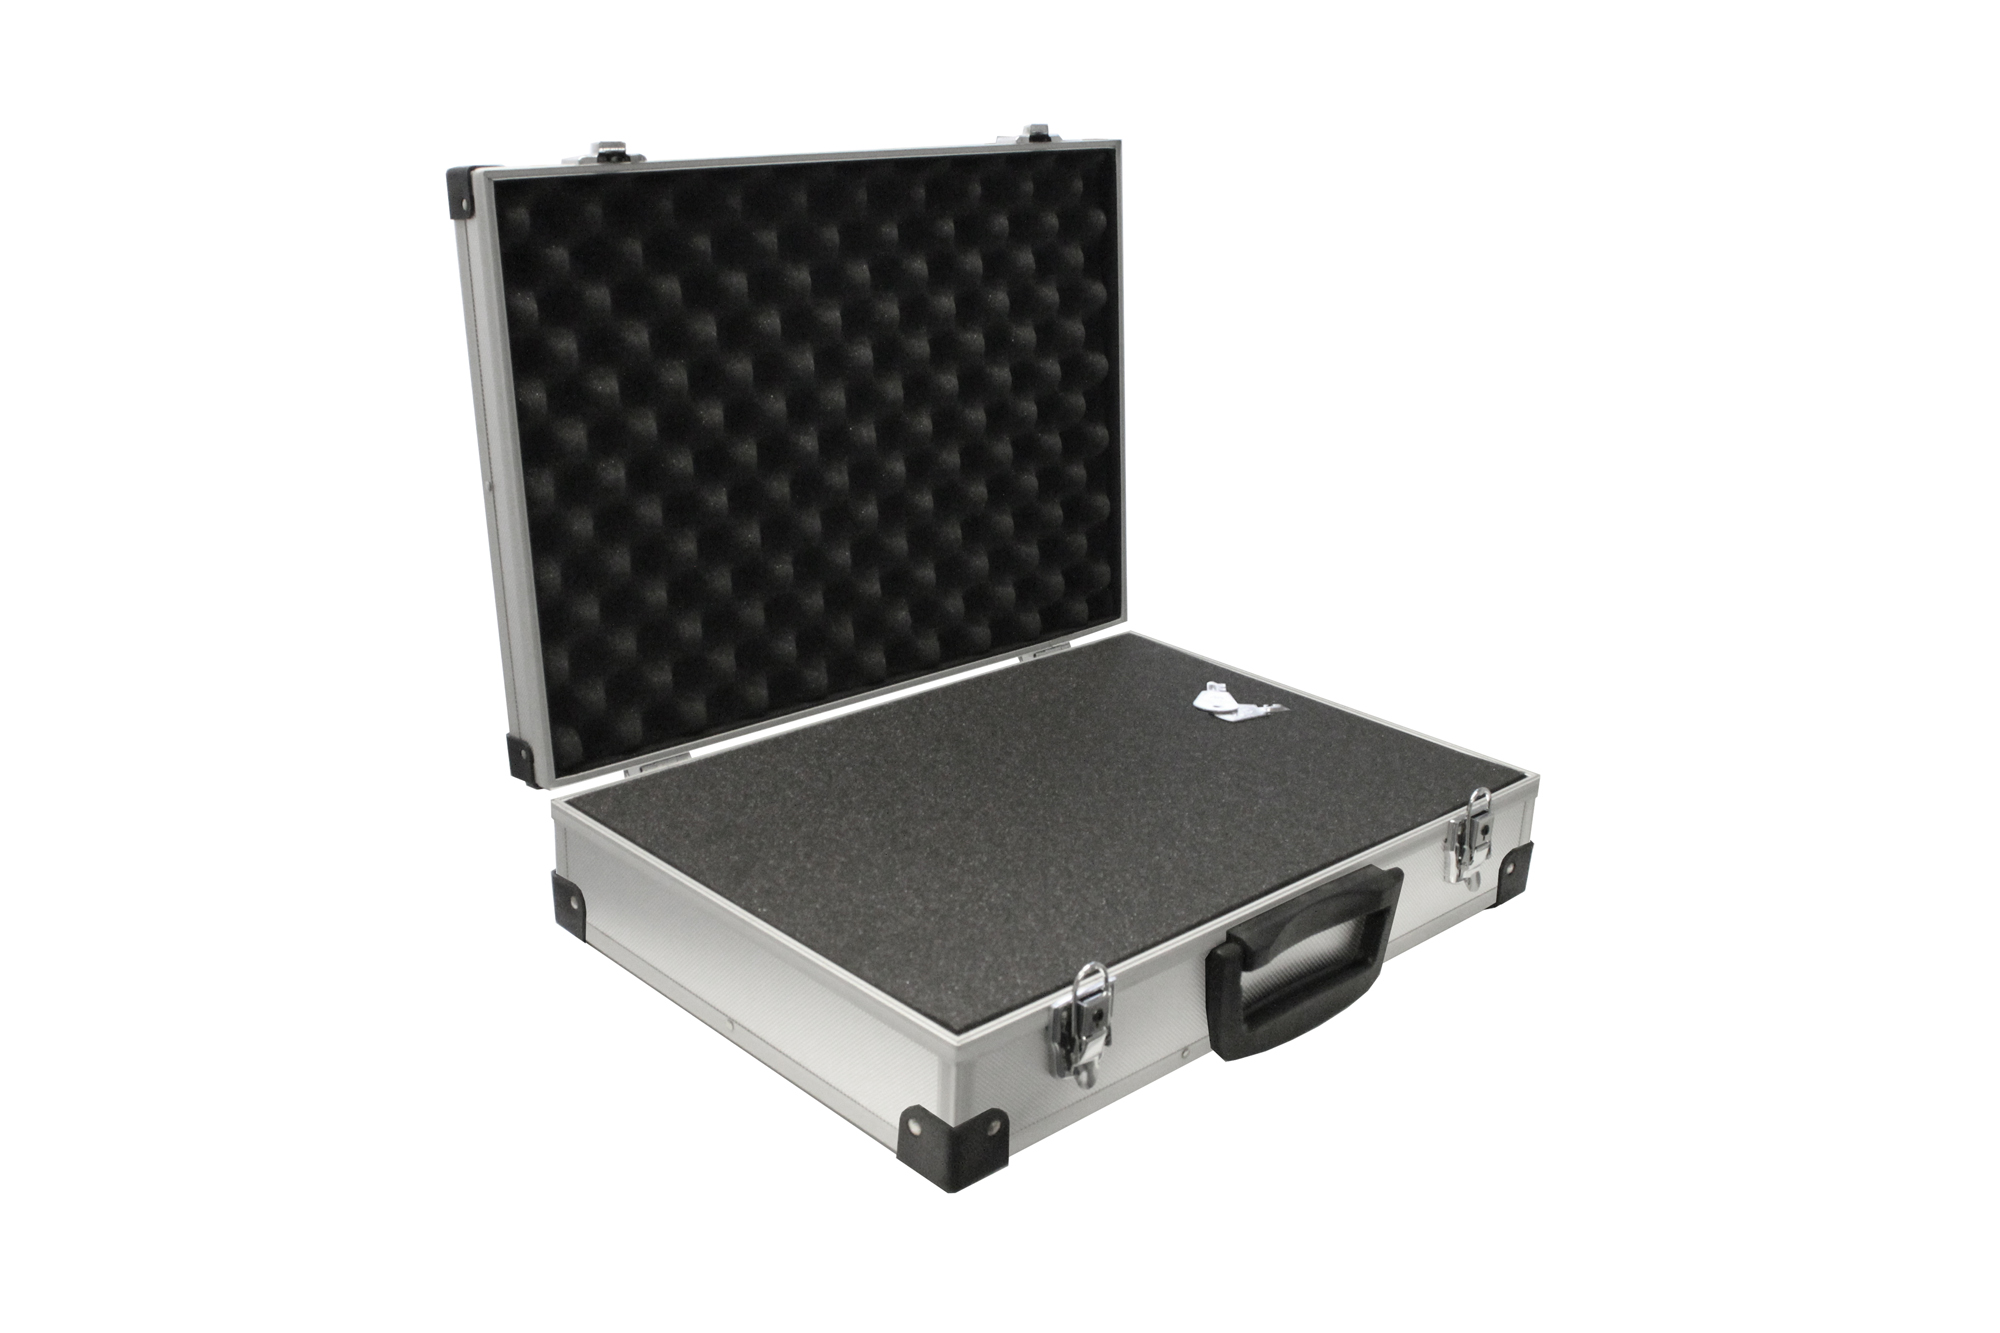 «PeakTech® P 7265» Carrying Case for Measurement Instruments